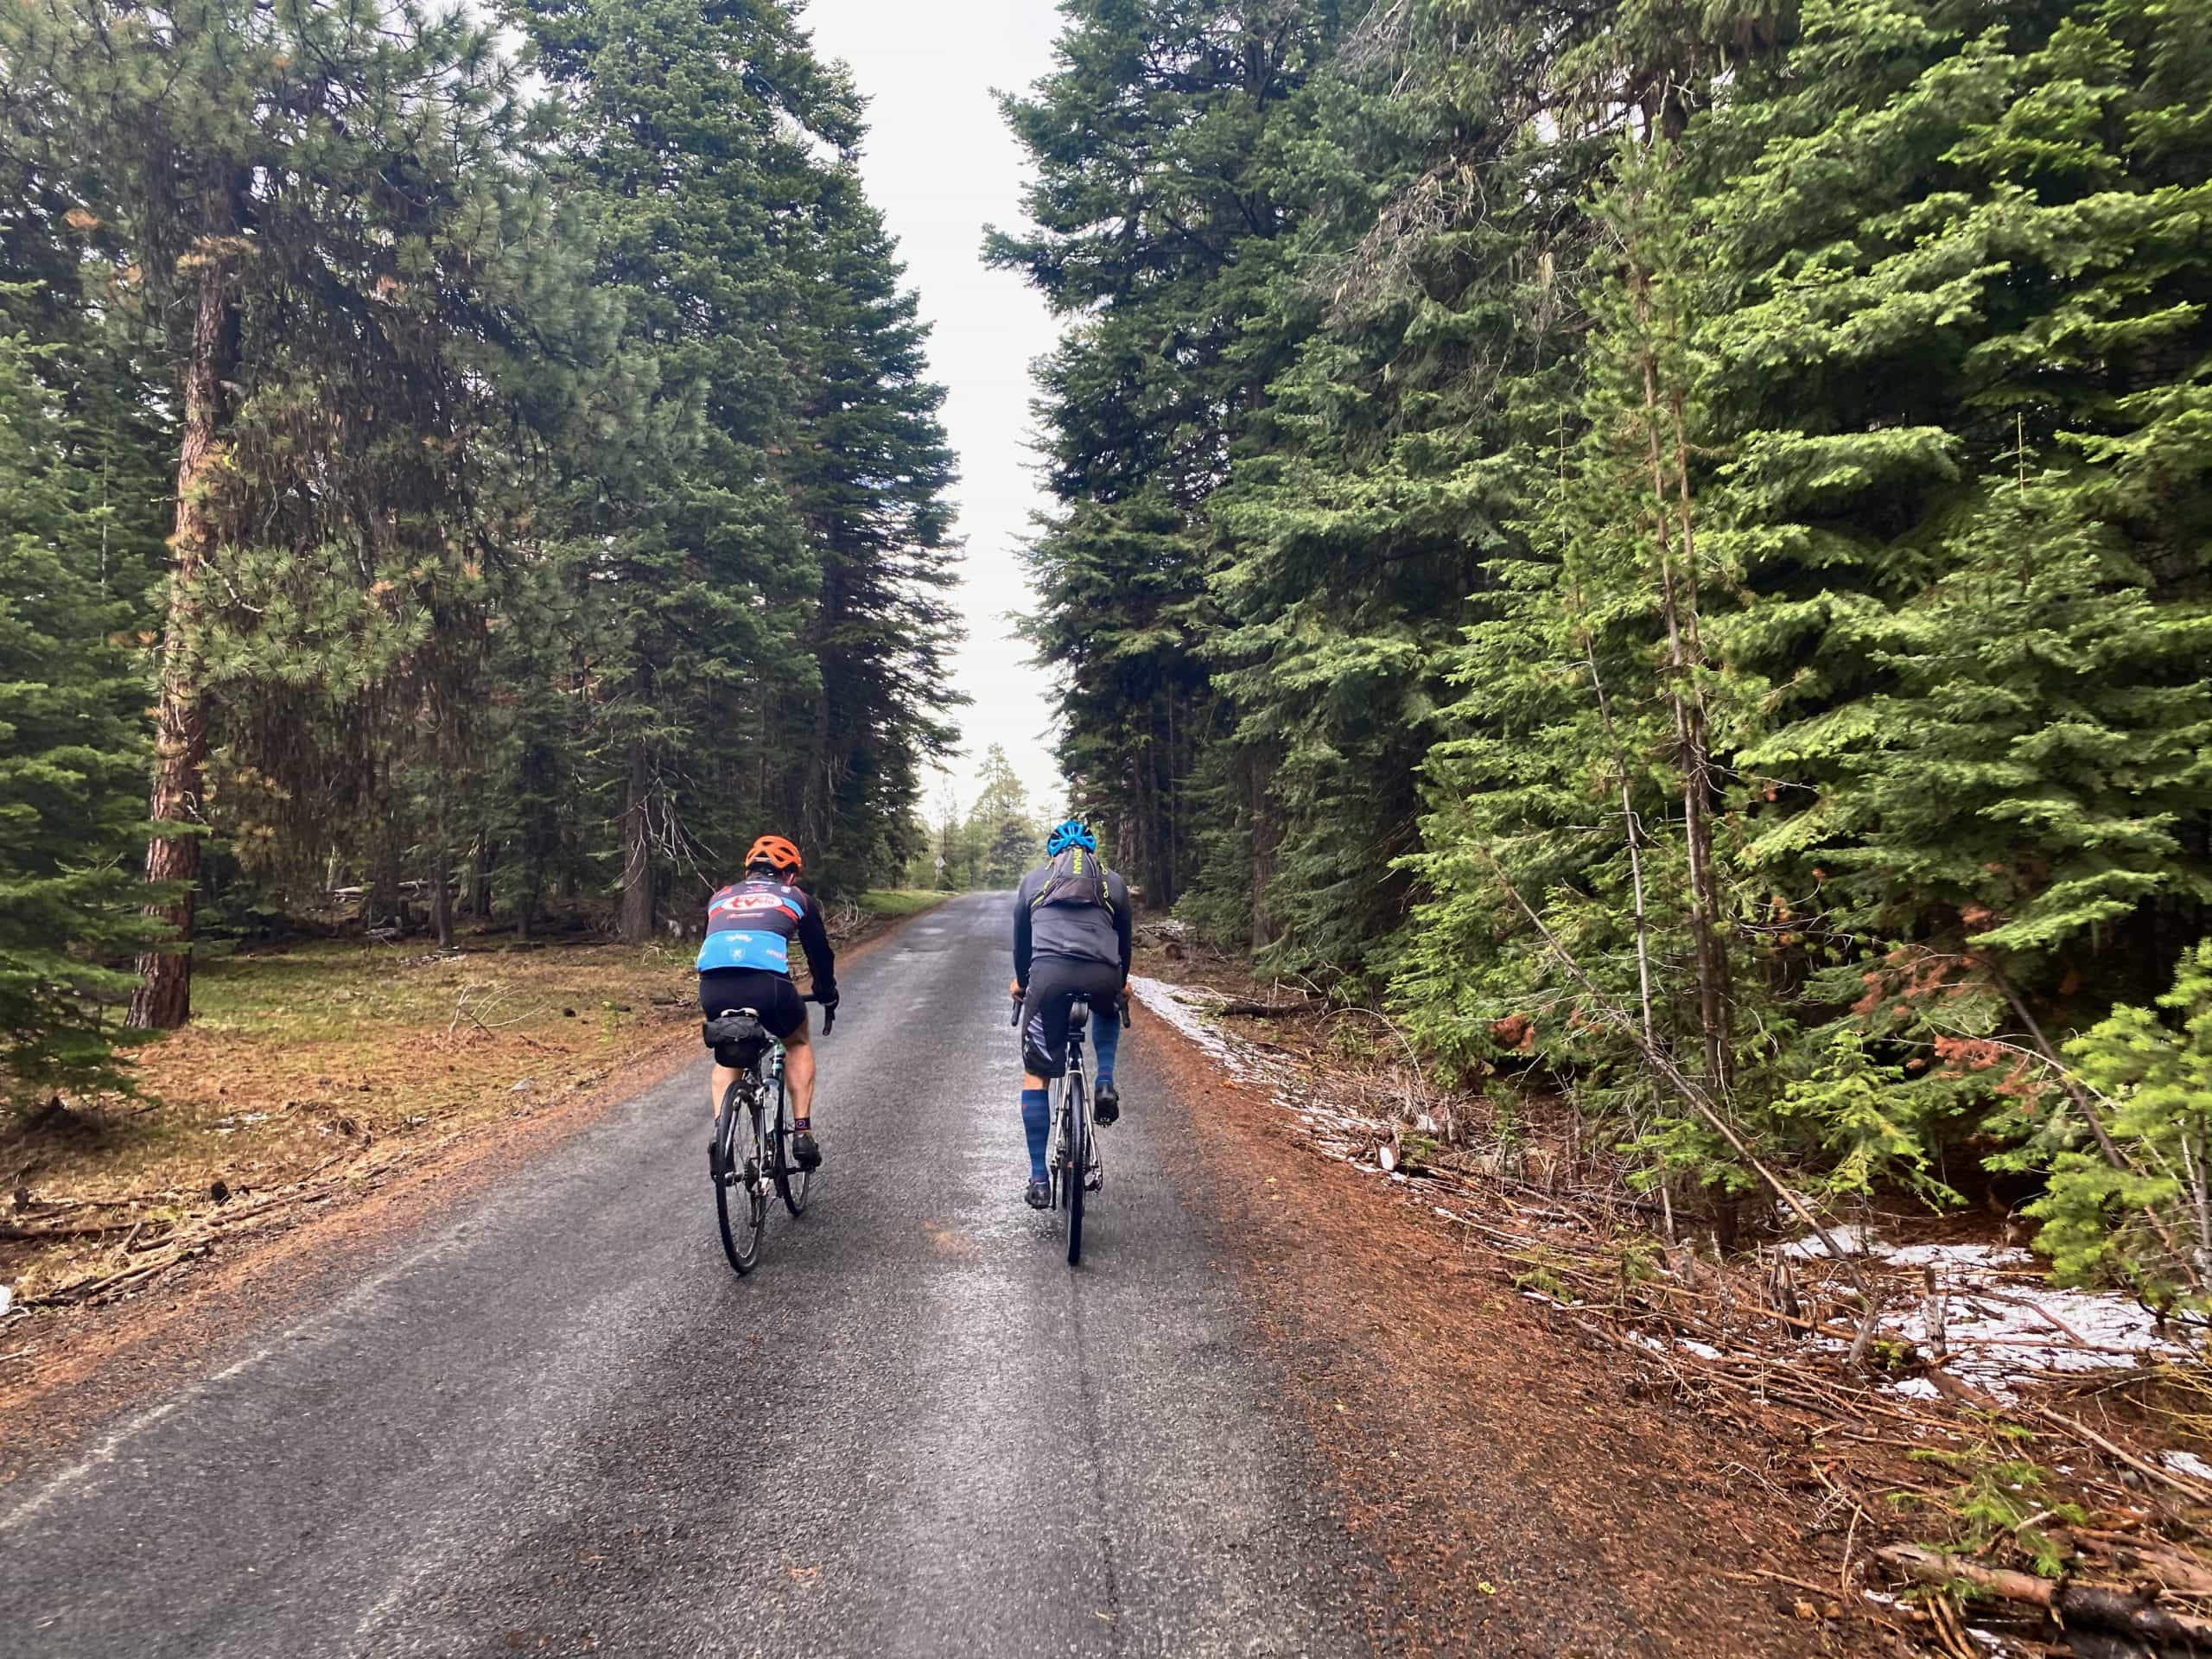 Two gravel cyclists summiting the climb on NF-12 in the Ochoco Mountains.